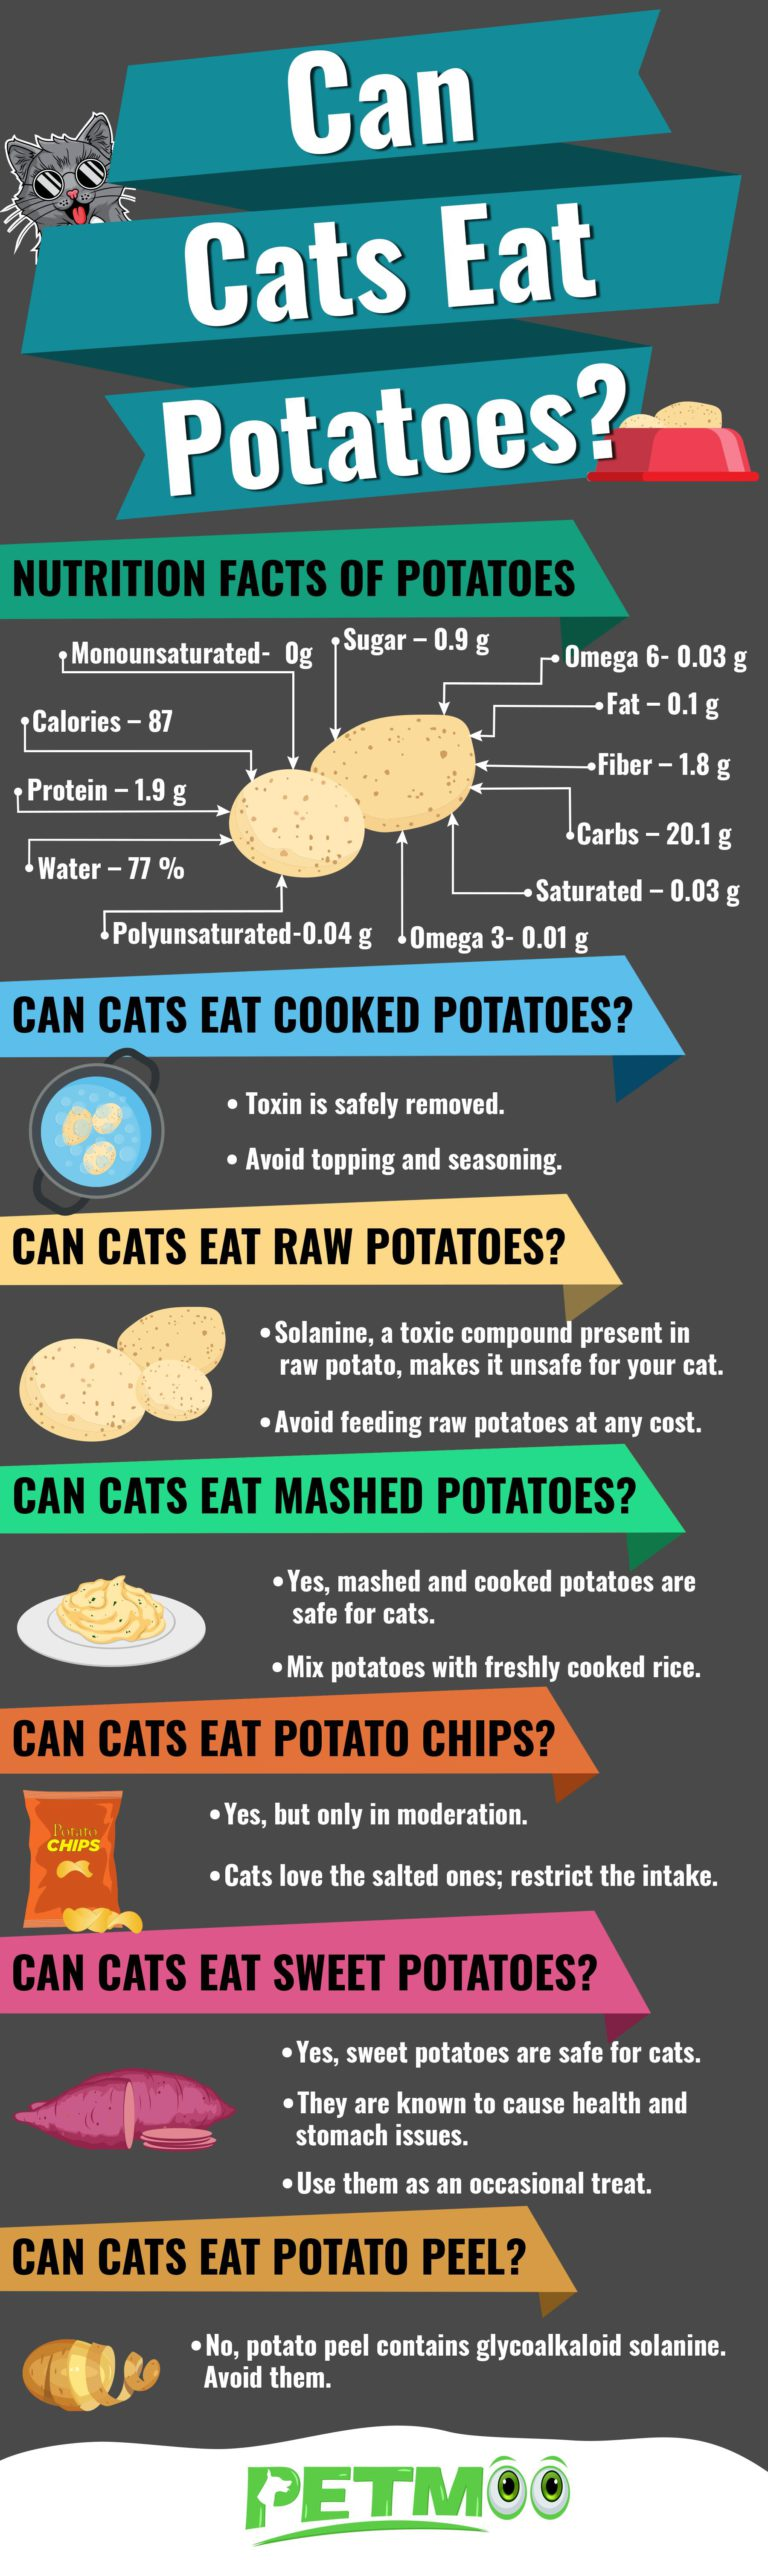 Can Cat Eat Potatoes Infographic